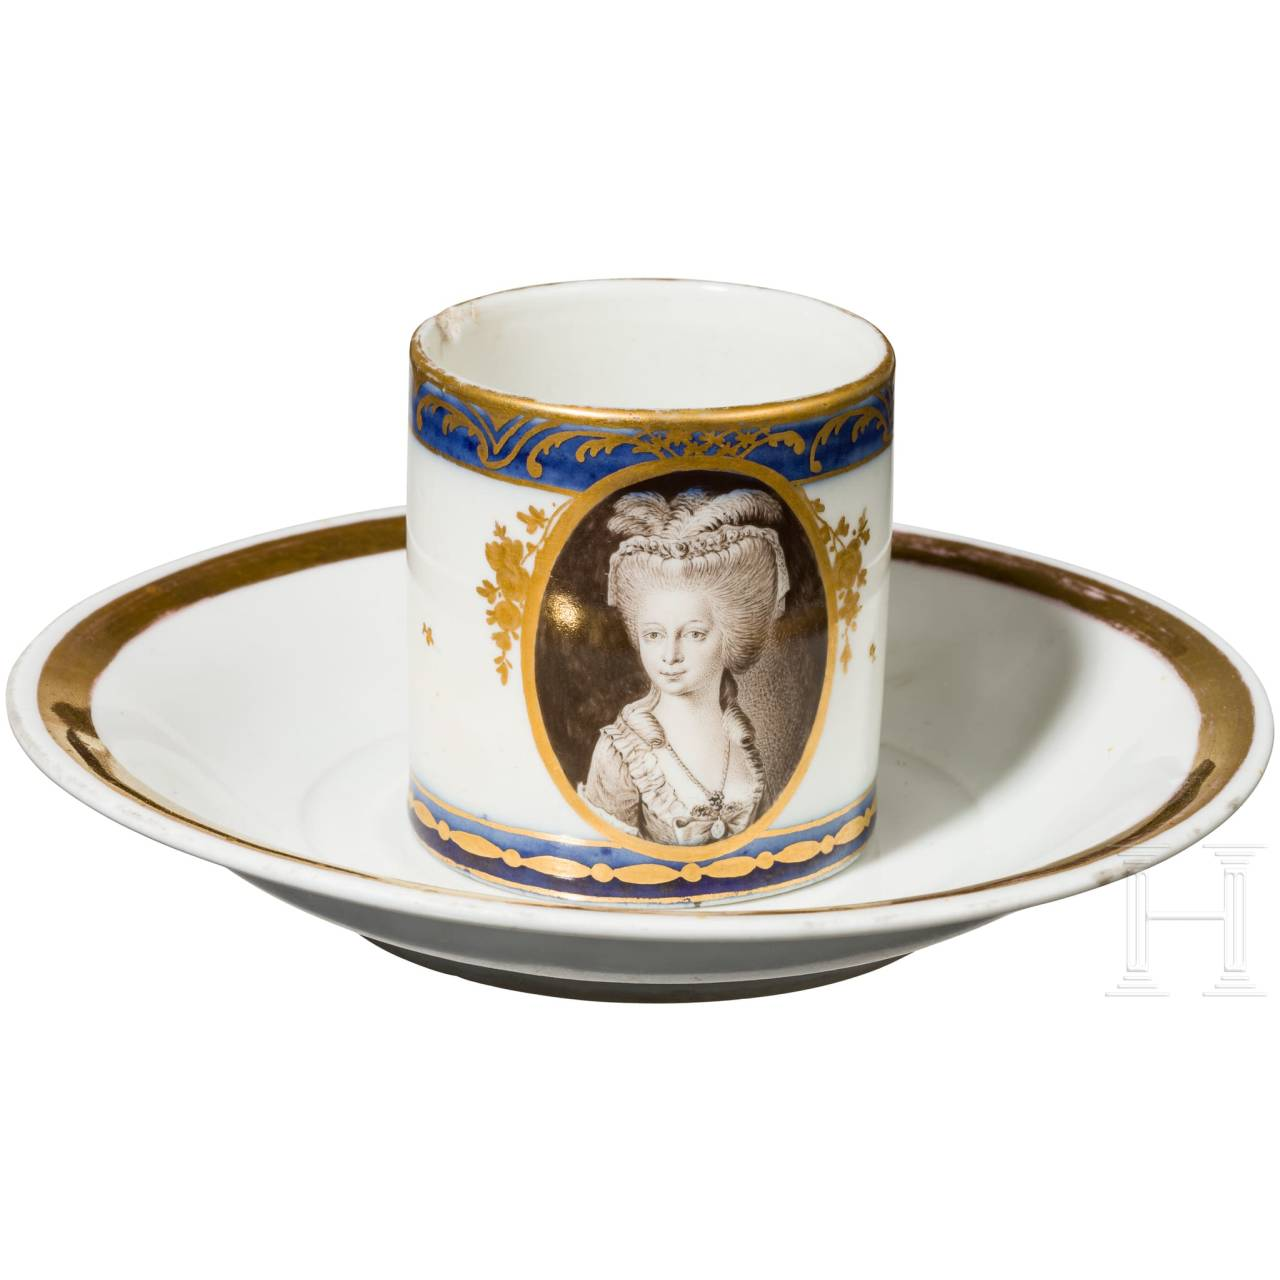 A cup with portrait of a lady, late 18th century